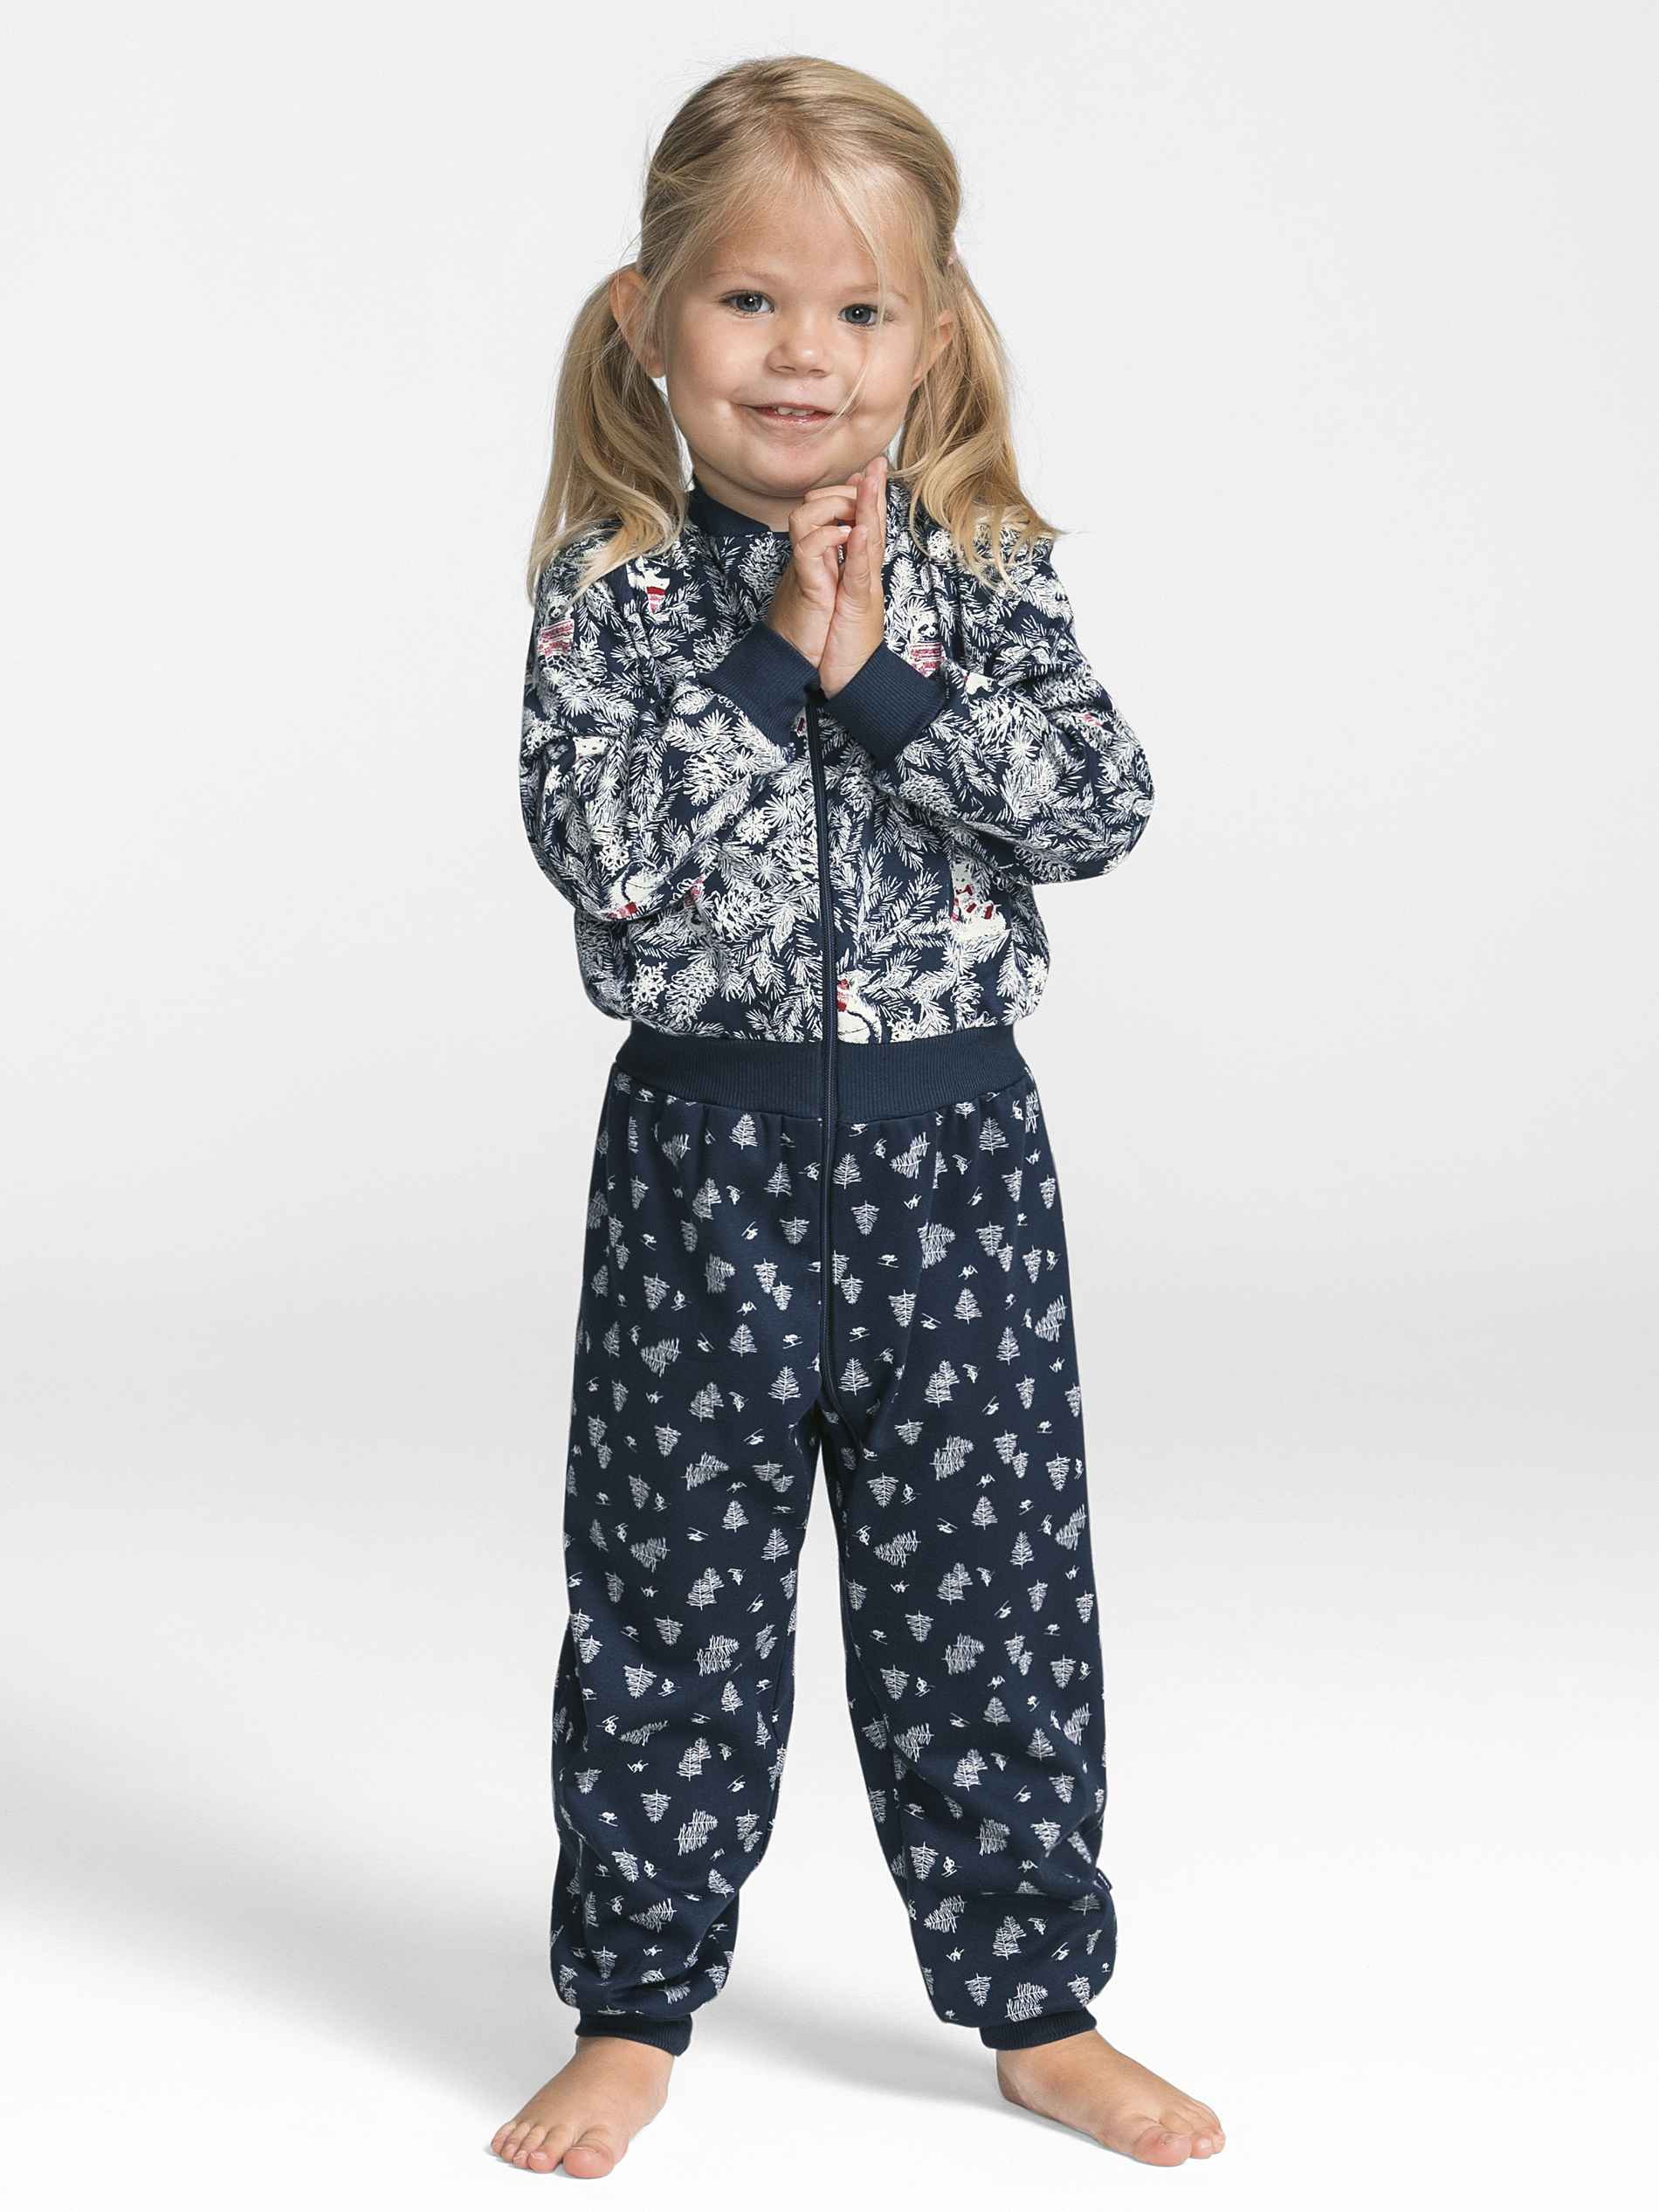 Kinder CALIDA Family Time Kinder-Jumpsuit mit Bündchen blau | 07613381057193